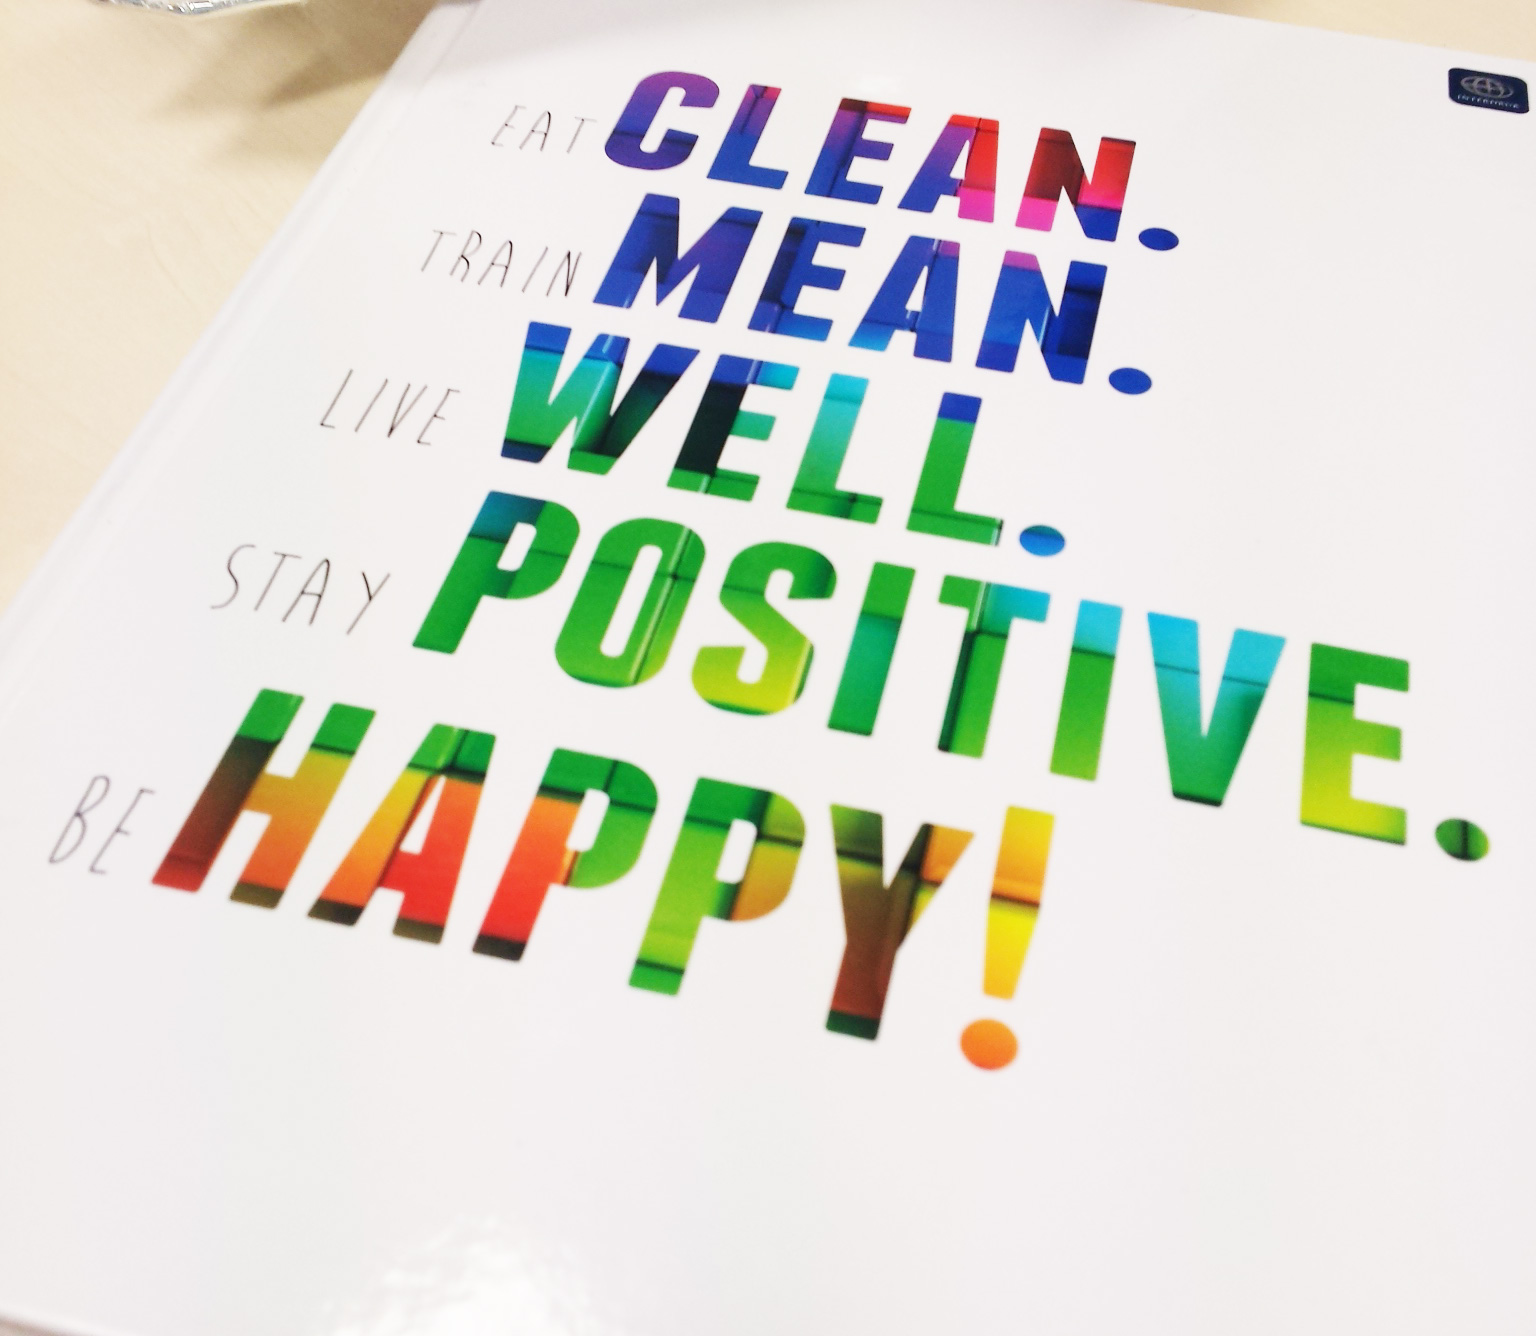 Clean mean well positive happy